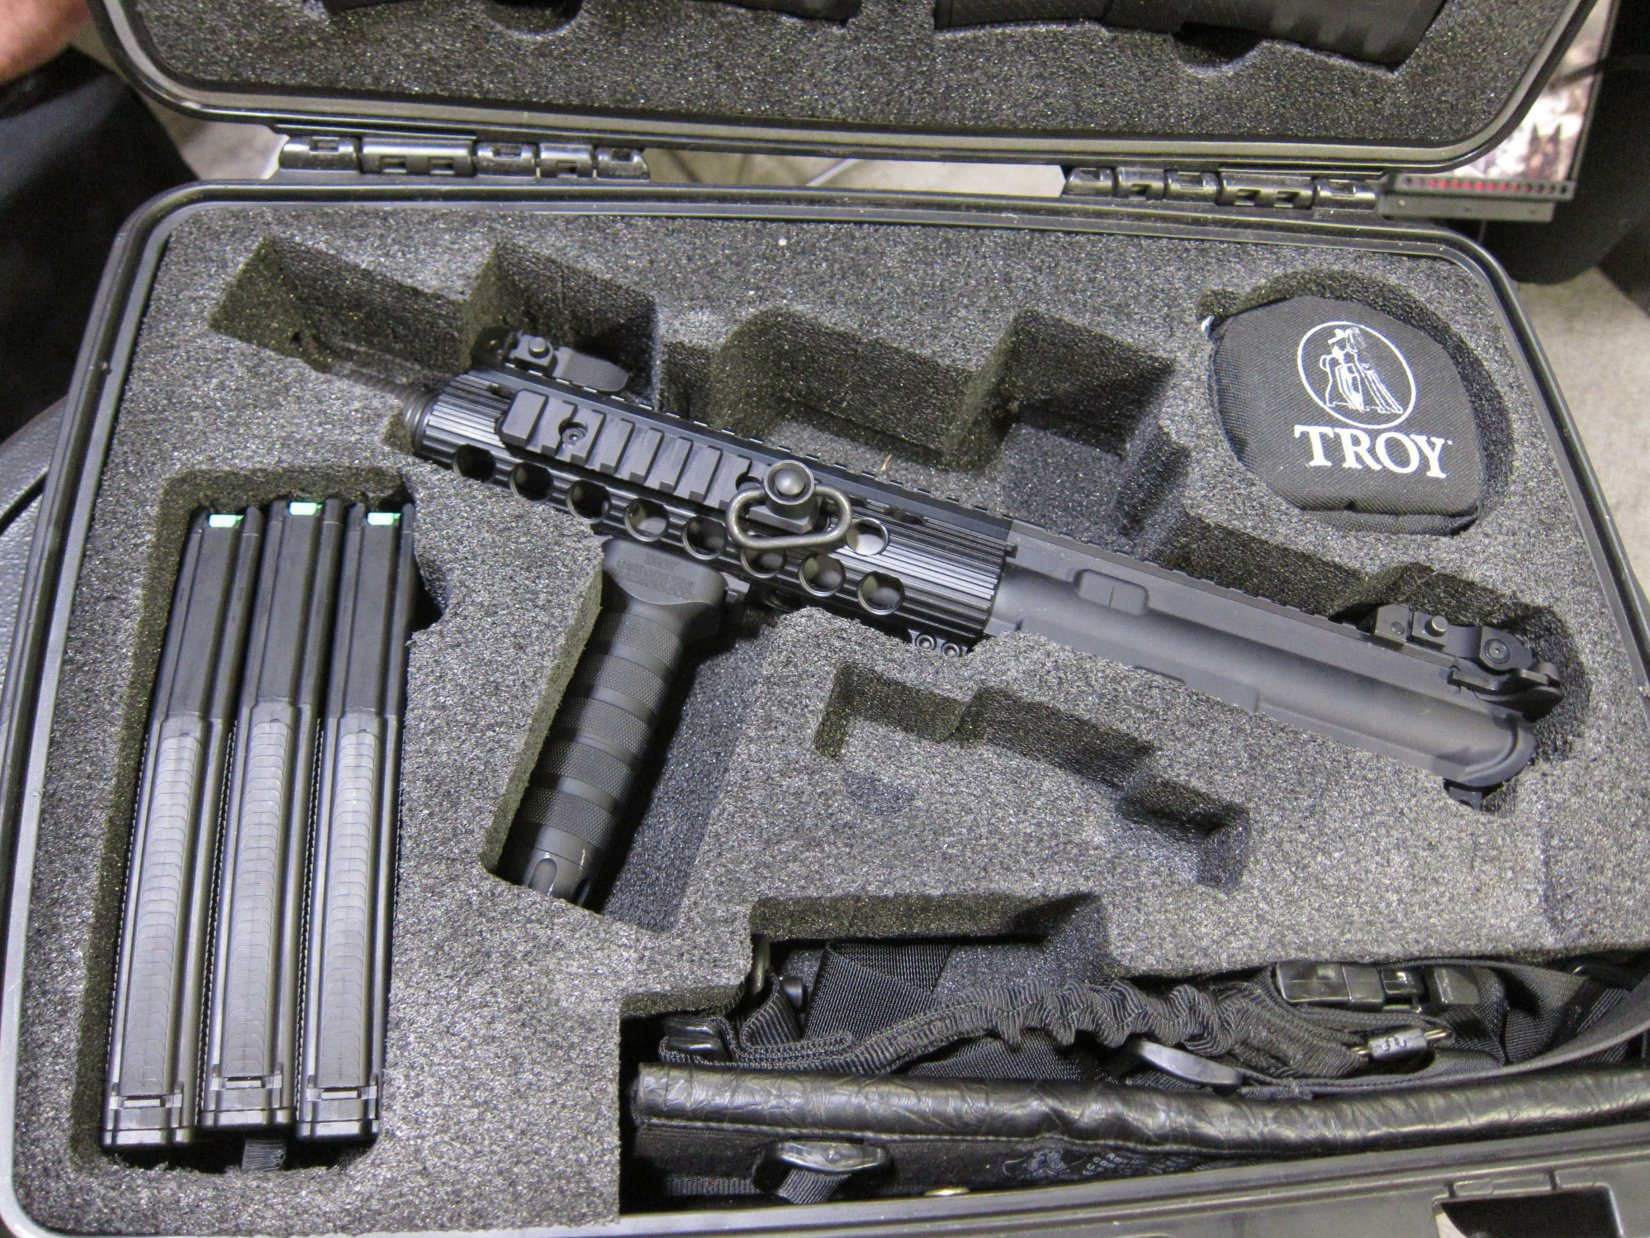 Troy Industries M7 Upper Receiver/Lower Receiver Upgrade Kit for Tactical AR-15 Carbine Lowers (Video!)